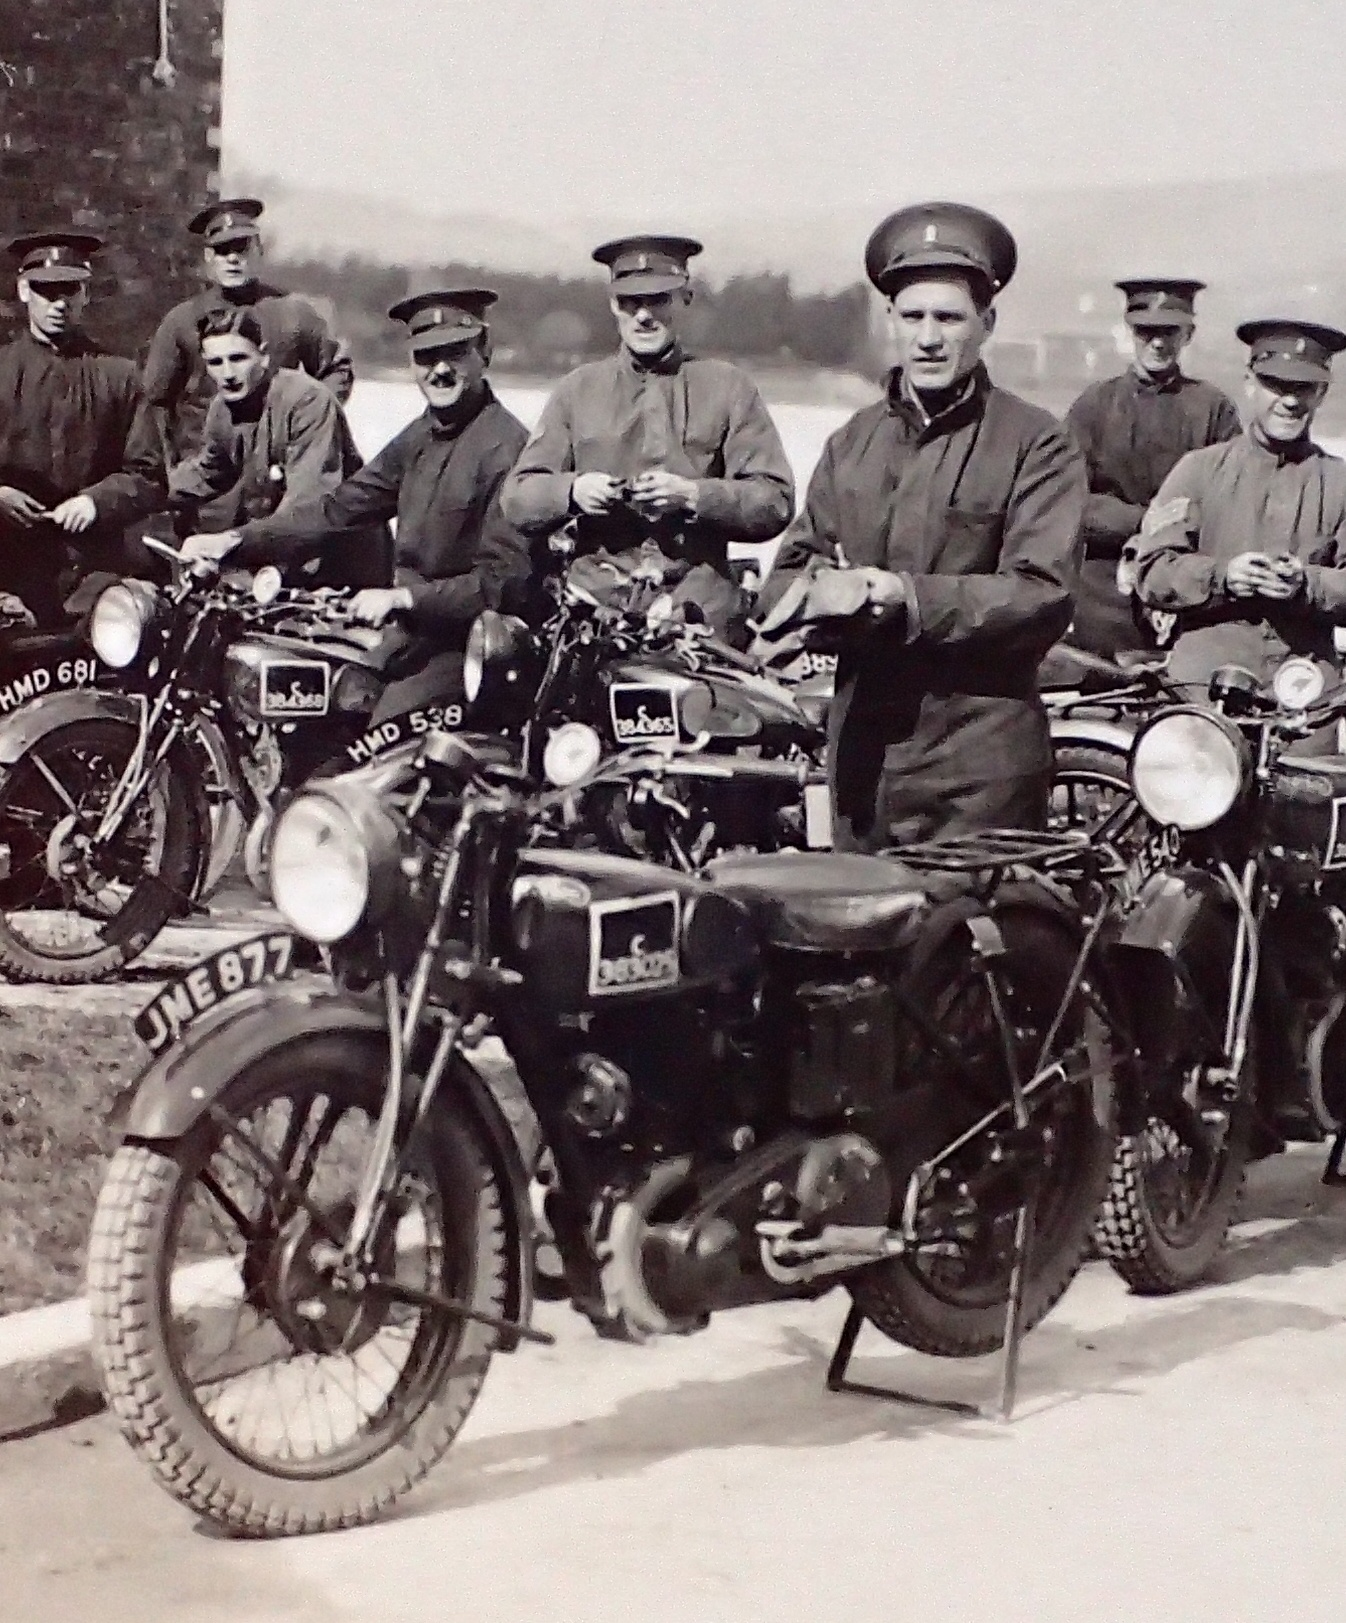 """""""The band was to form the Regimental motor-cyclist troop. But, when nineteen new motor-cycles arrived, there were no instructors available. Each bandsman, therefore, was told that he was to be given a motorcycle as a birthday present. The official handbooks and instructions were issued and dates laid down on which tests and inspections would be carried out. The bandsmen were instructed to find for themselves ways and means of learning to ride and maintain their motor-cycles."""" Miller, Major-General Charles H., History of the 13th/18th Hussars (Queen Mary's Own) 1922-1947. Chisman Bradsaw Ltd, London 1949 - James Albert George Nunn (Amelia's Grandfather), shown fifth from left"""